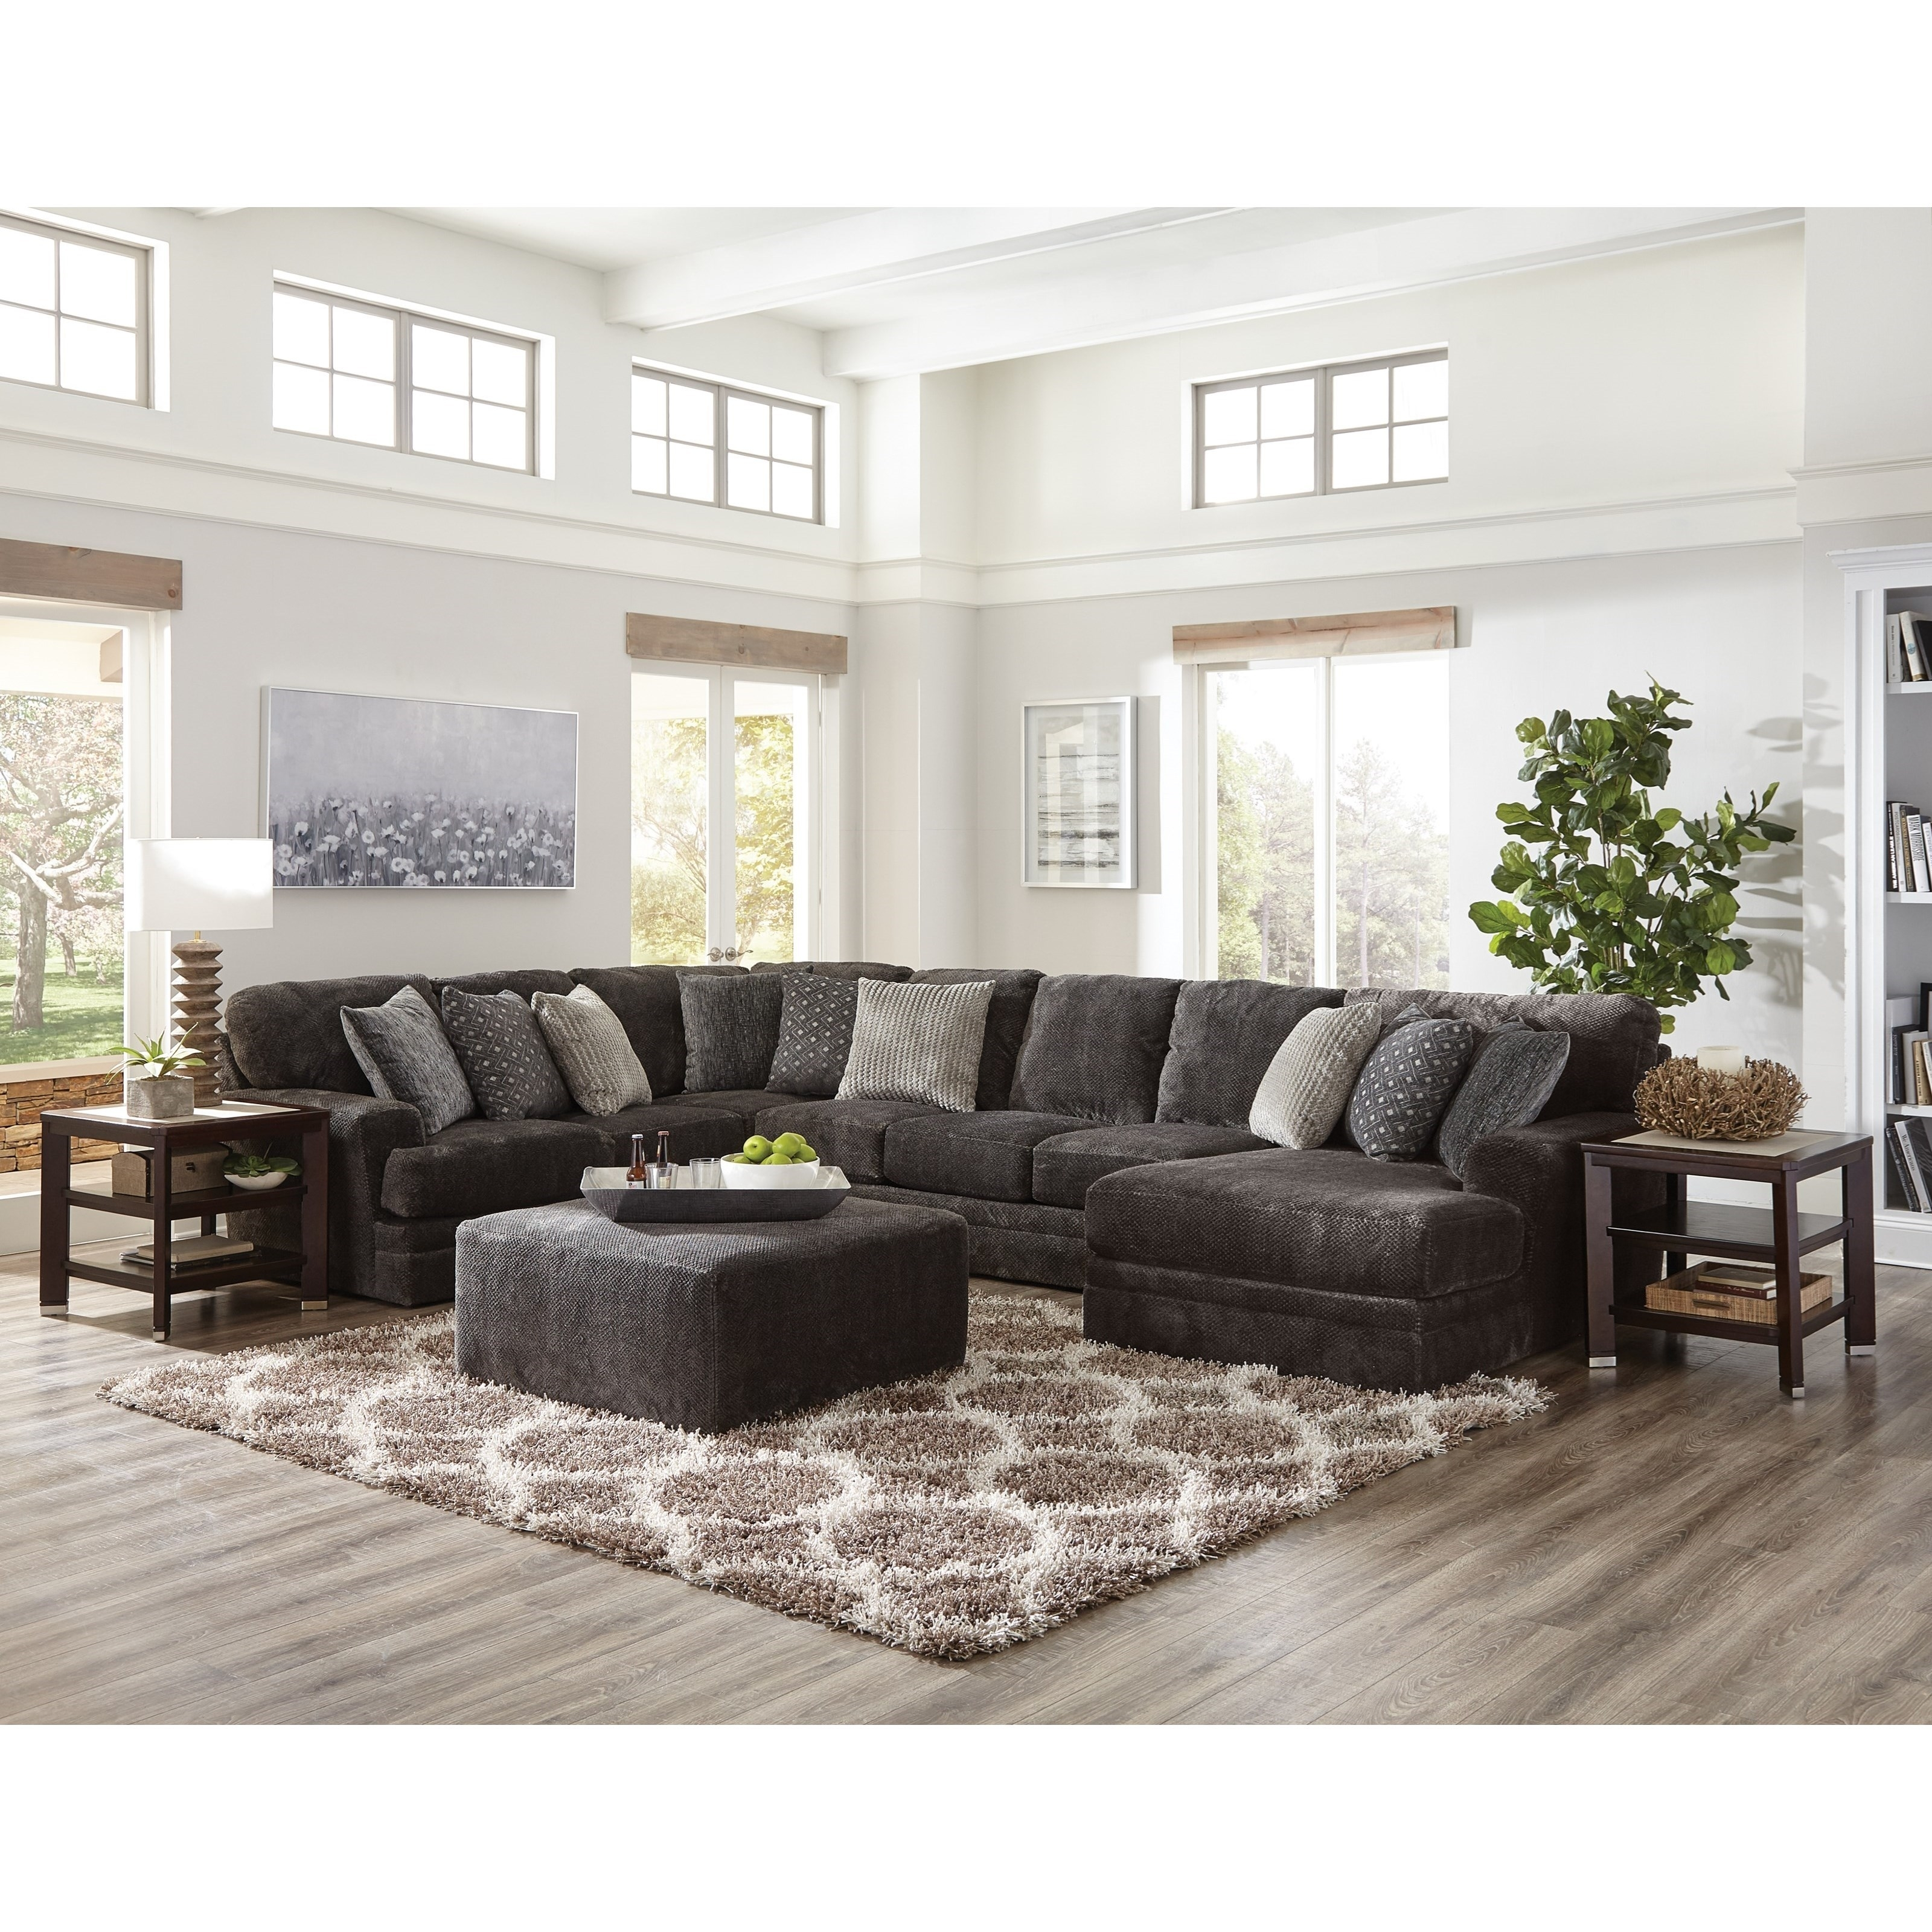 Mammoth Three Piece Sectional Sofa With Chaise | Ruby Gordon Home Inside Jackson 6 Piece Power Reclining Sectionals (Image 18 of 25)